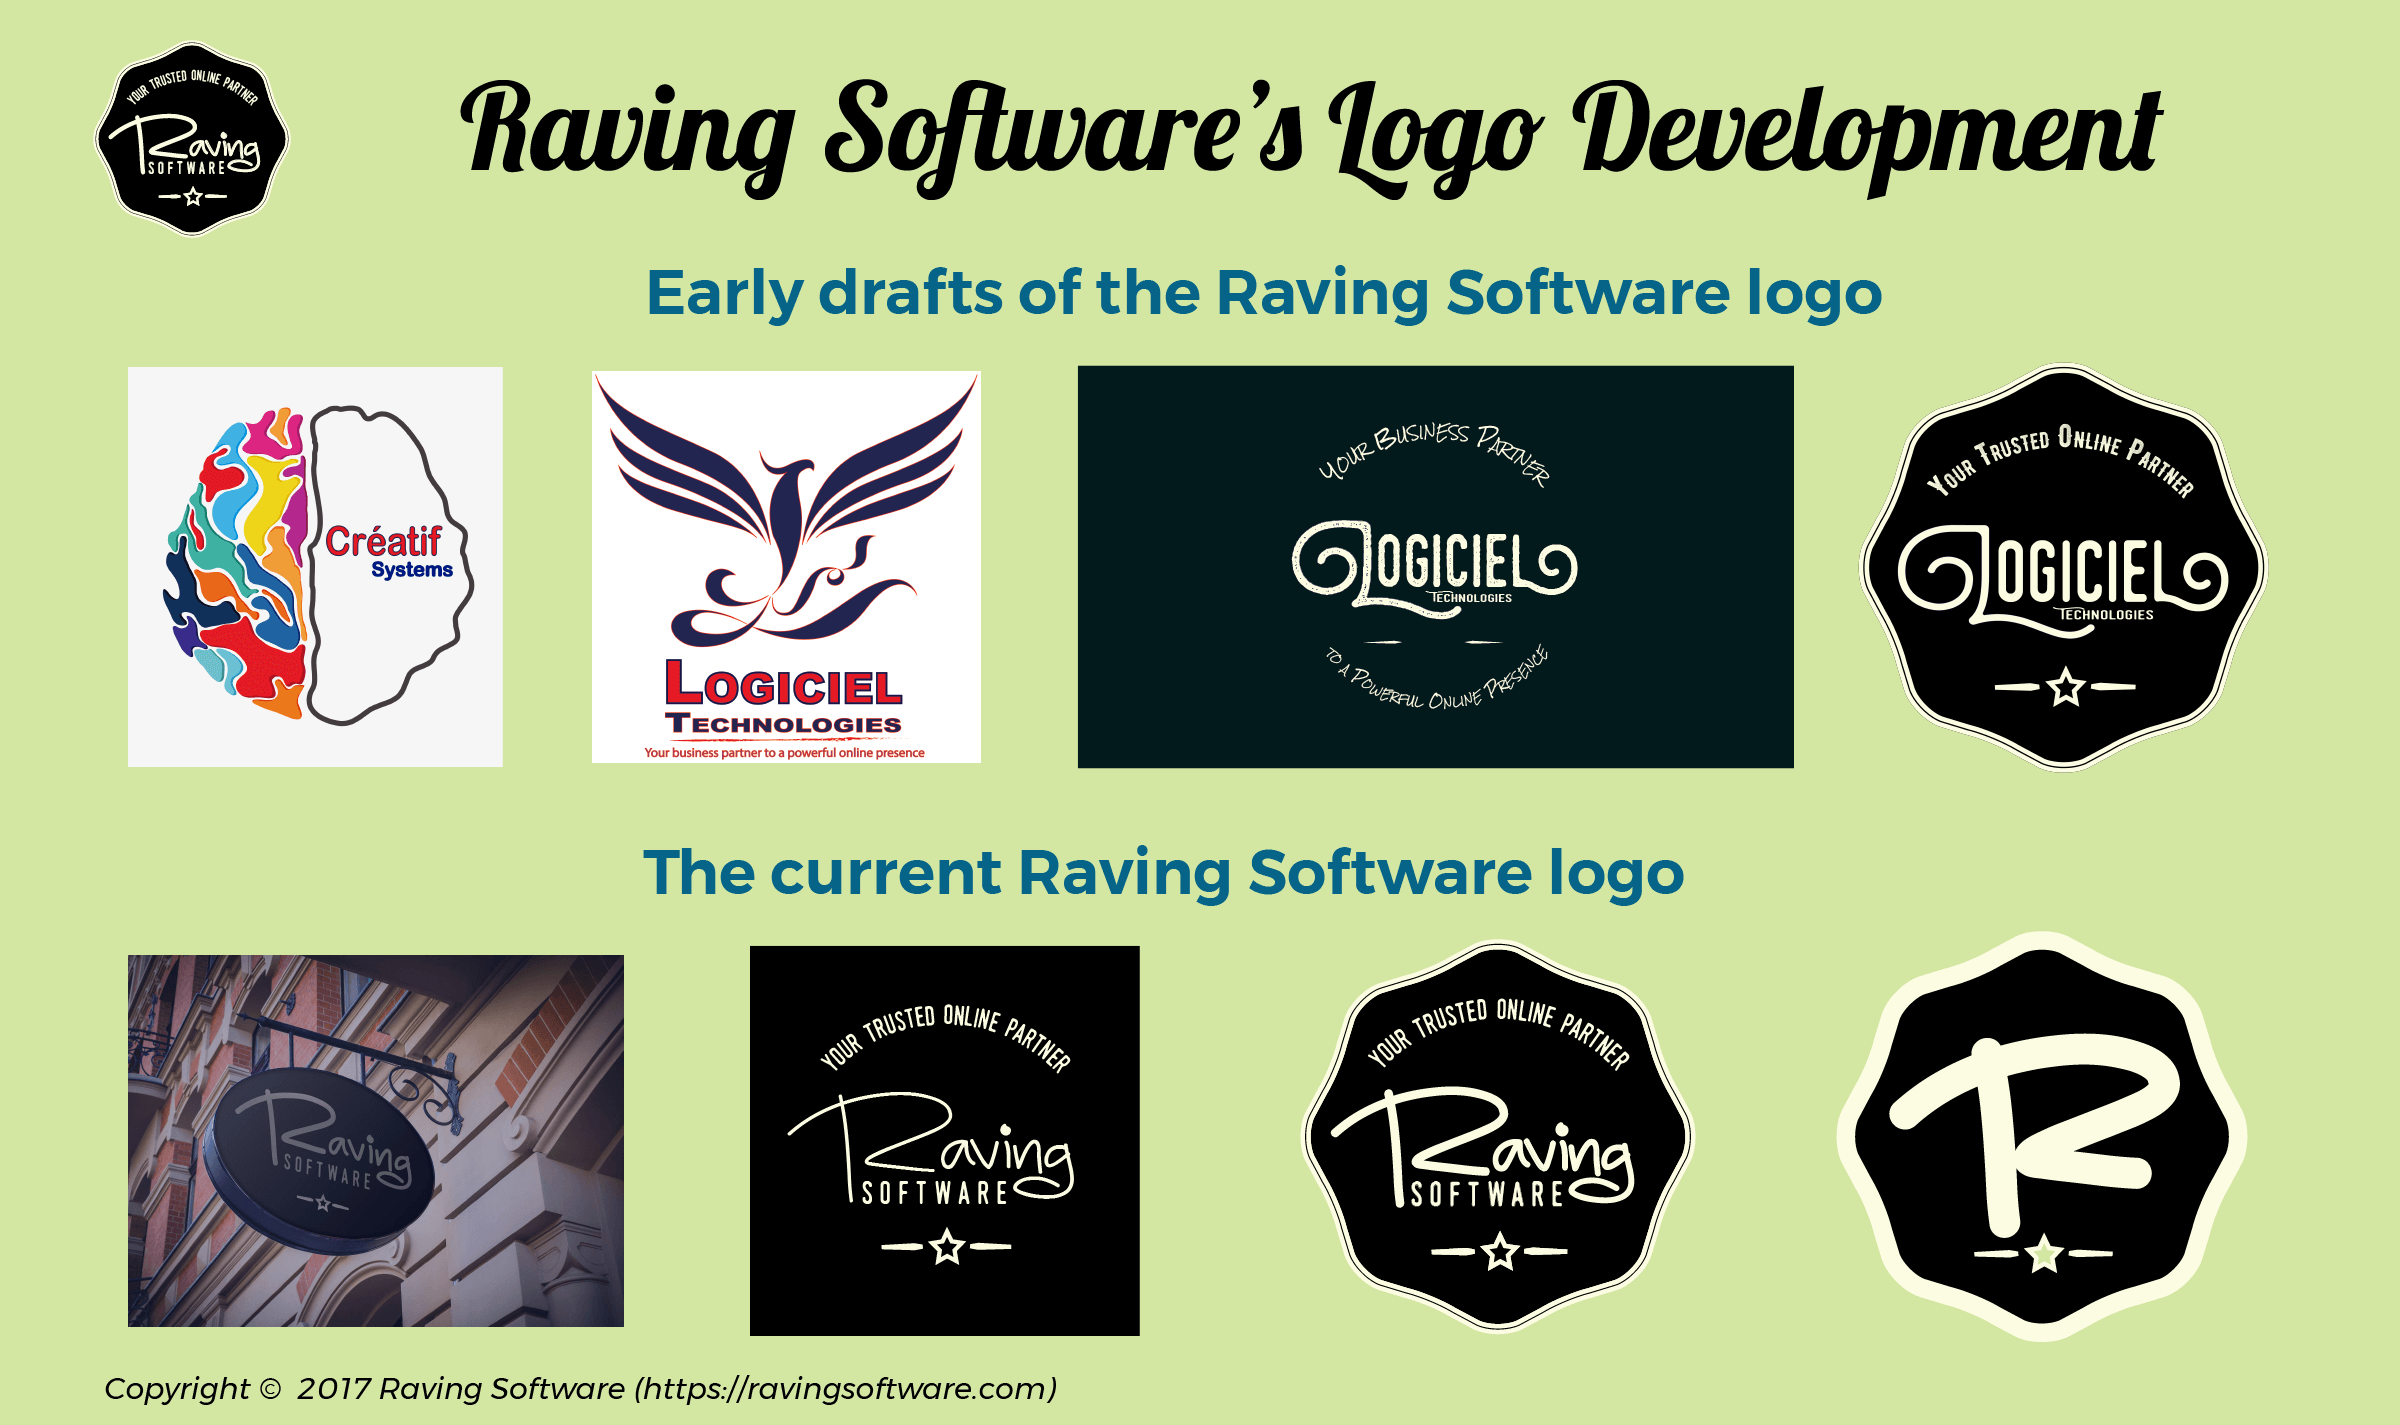 The evolution of Raving Software's logo